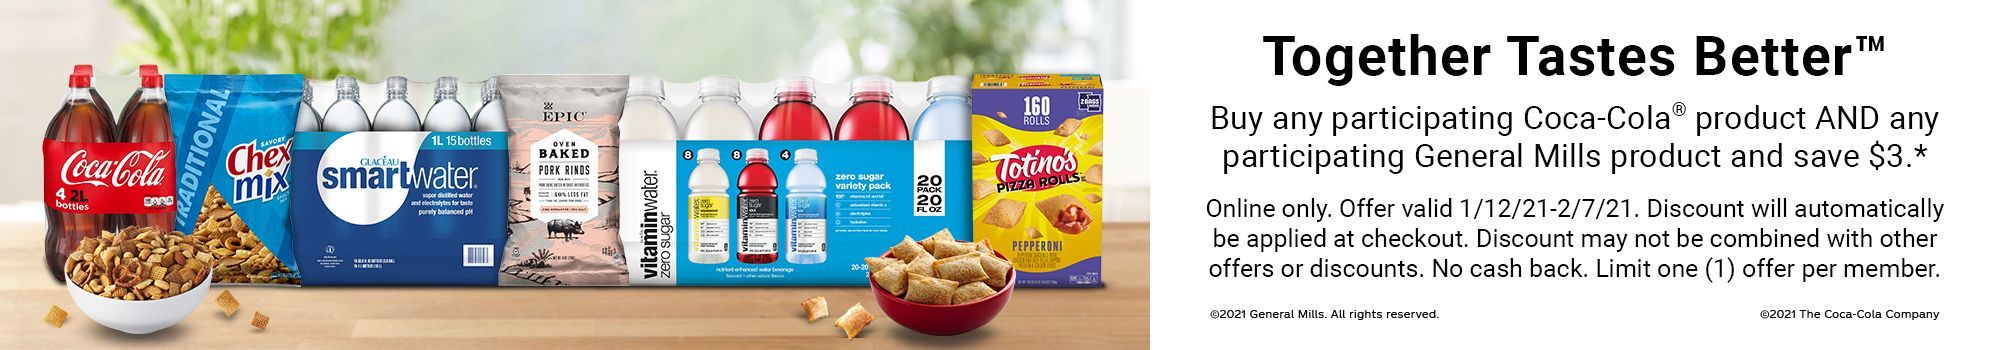 Together Tastes Better. Buy any participating Coca-Cola product AND any participating General Mills product and save $3.* Online only. Offer valid 1/12/21 to 2/7/21. Discount will automatically be applied at checkout. Discount may not be combined with other offers or discounts. No cash back. Limit one offer per member.